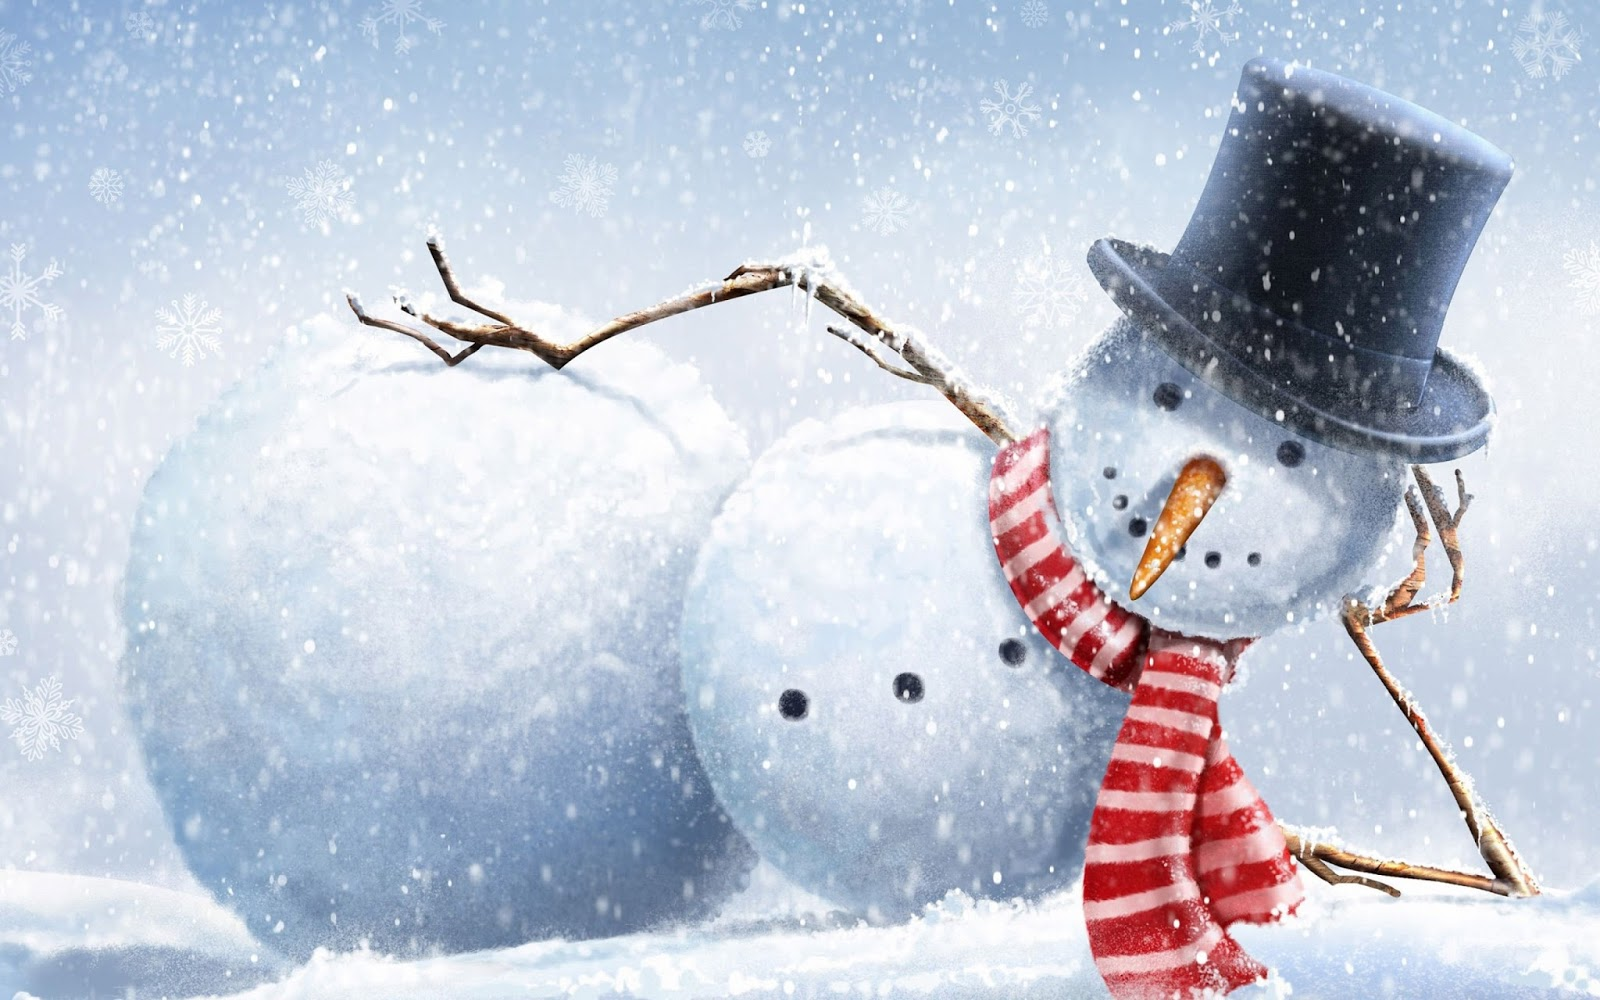 Snowman Desktop Backgrounds 87 images in Collection Page 1 1600x1000